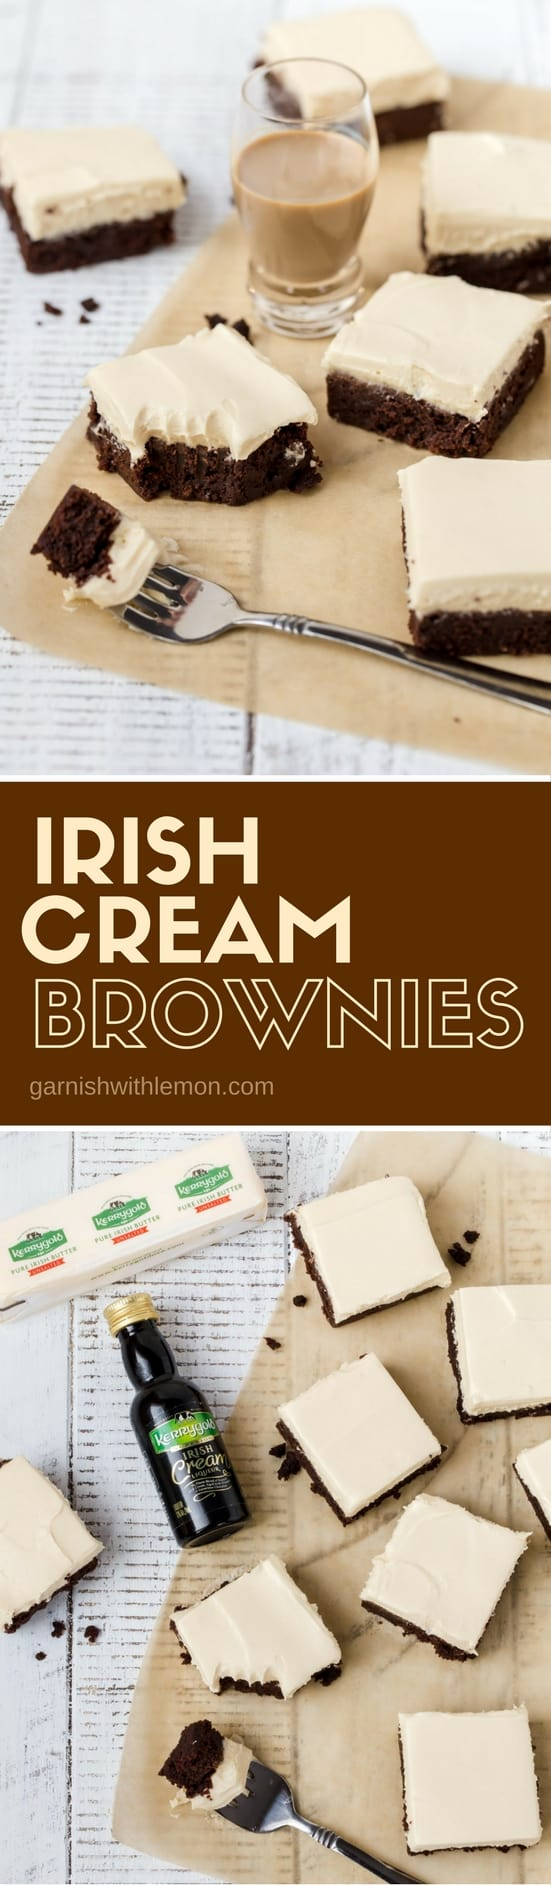 Collage image of Irish Cream Brownies